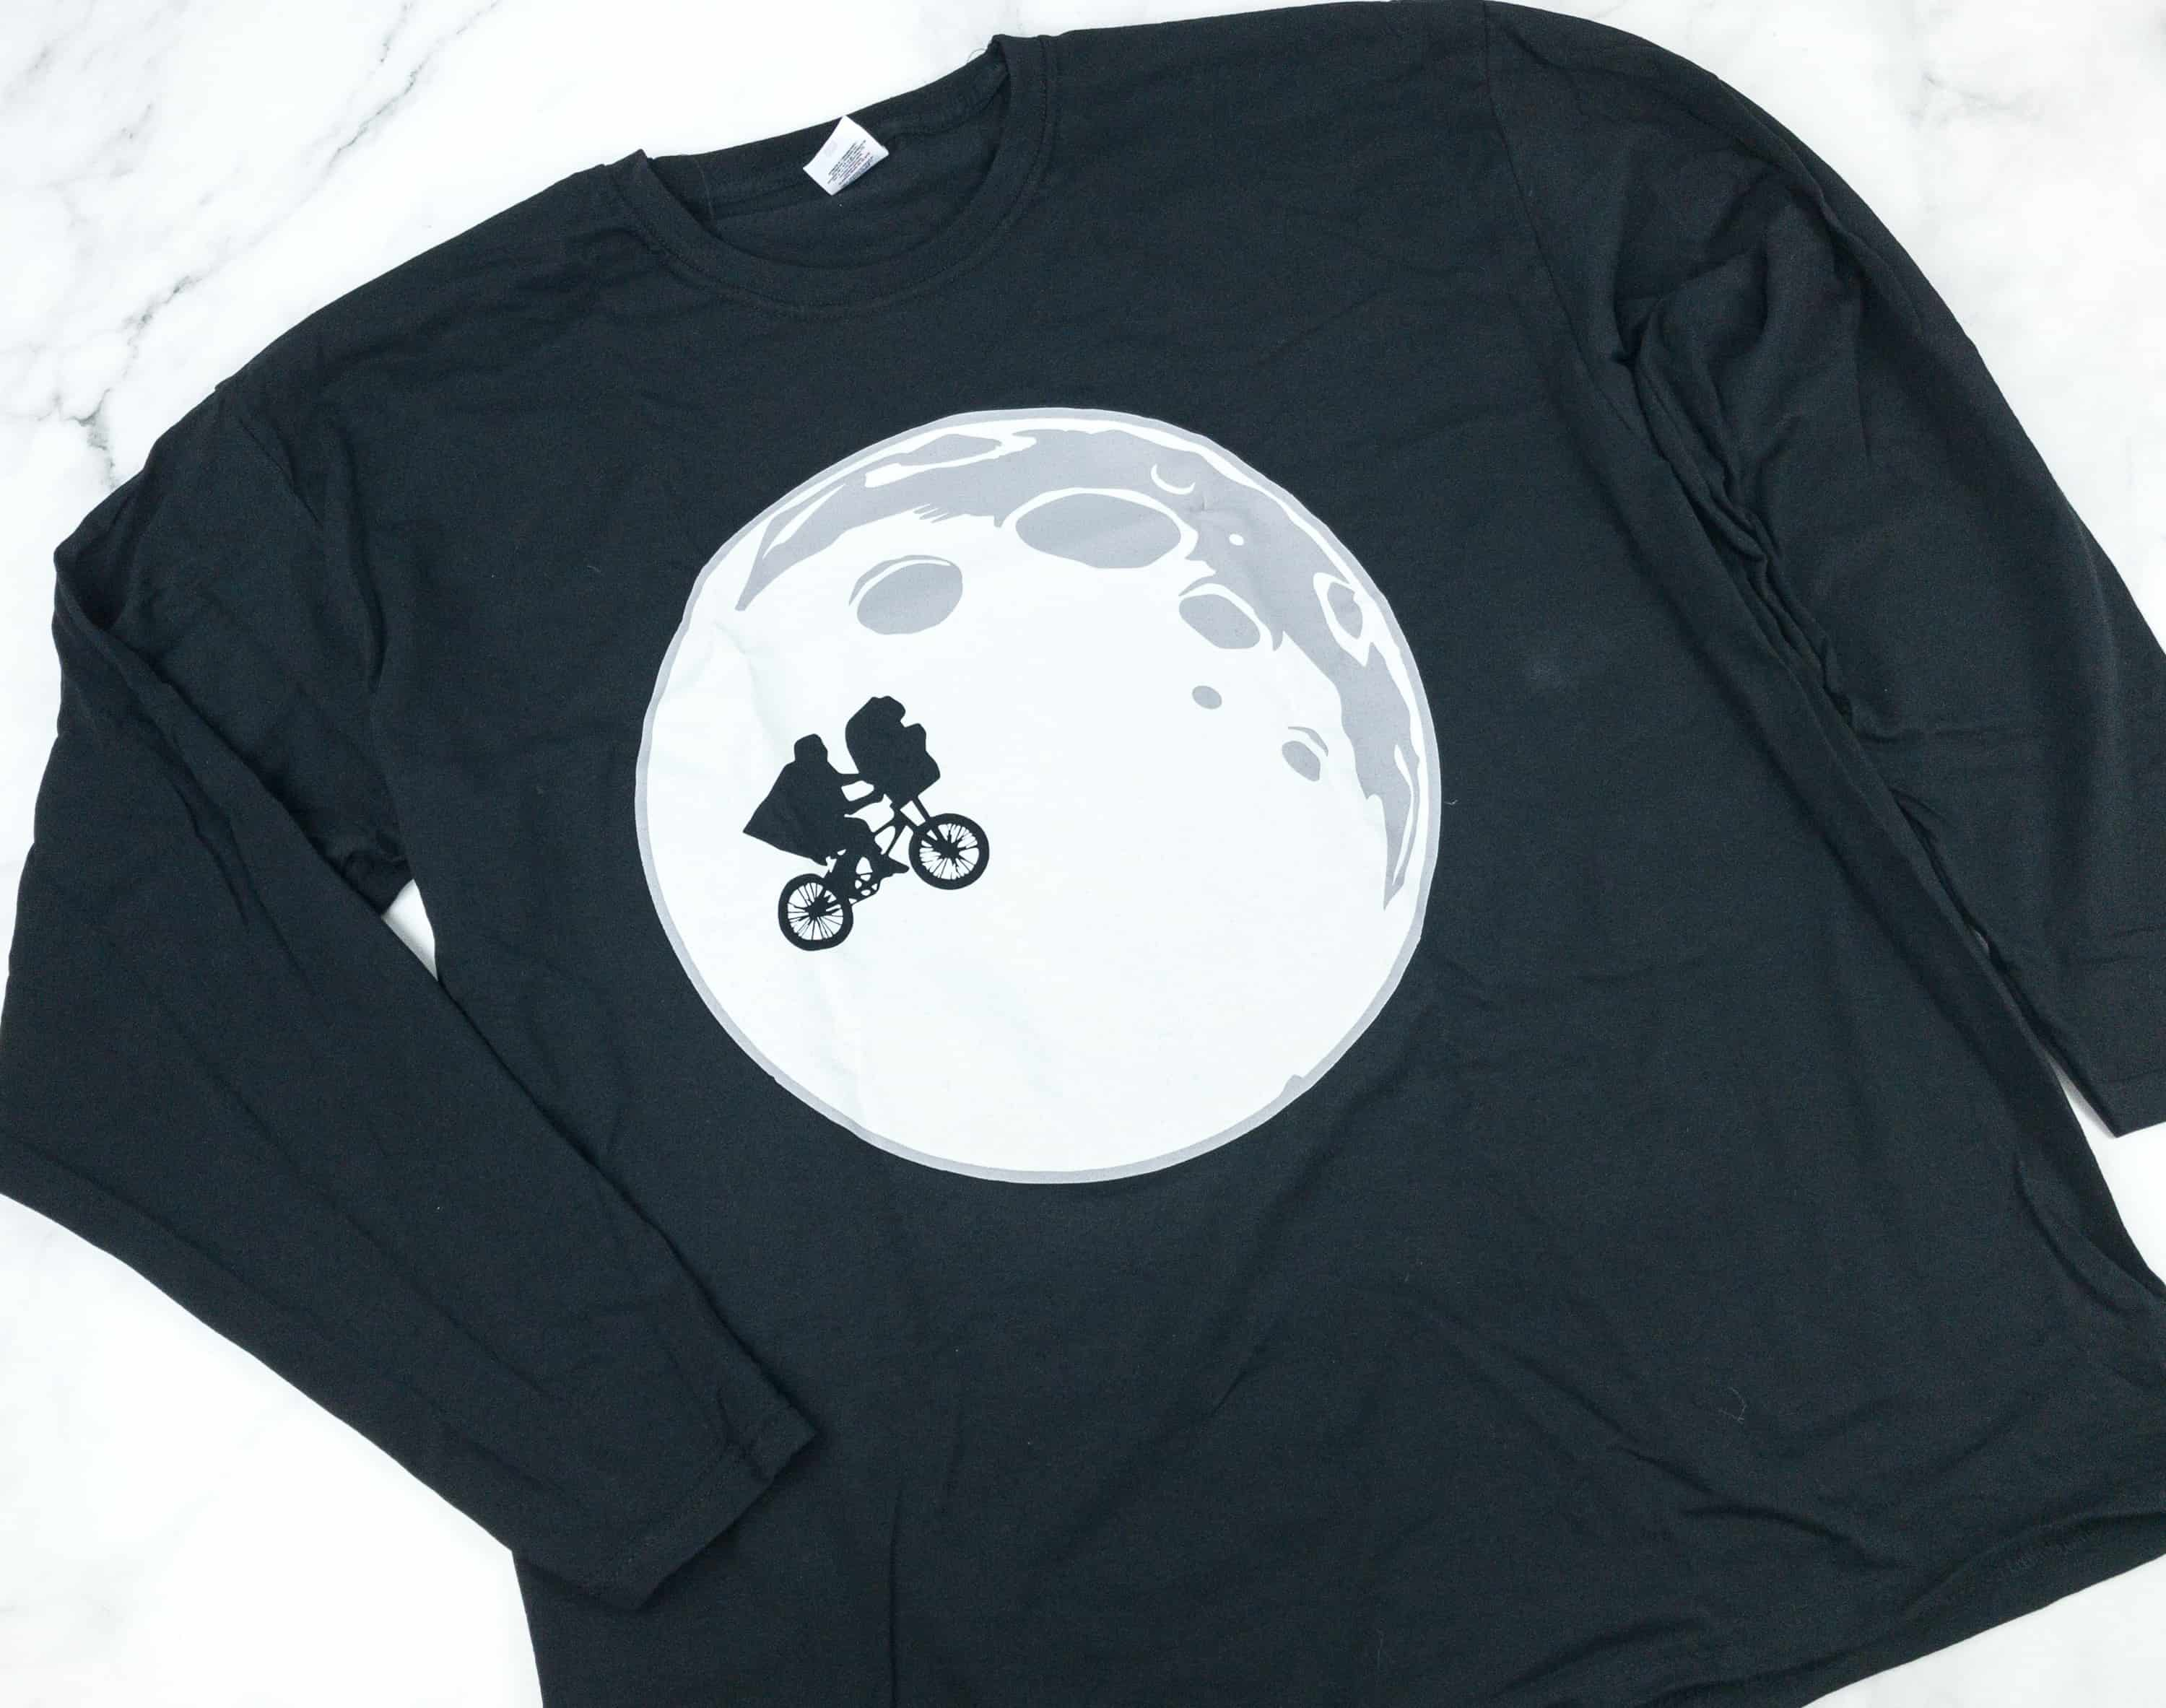 911f33fe Long Sleeve T-Shirt ($20.98) I bet this shirt will cause you that extreme  feeling of nostalgia (that is if you're an 80's kid!)